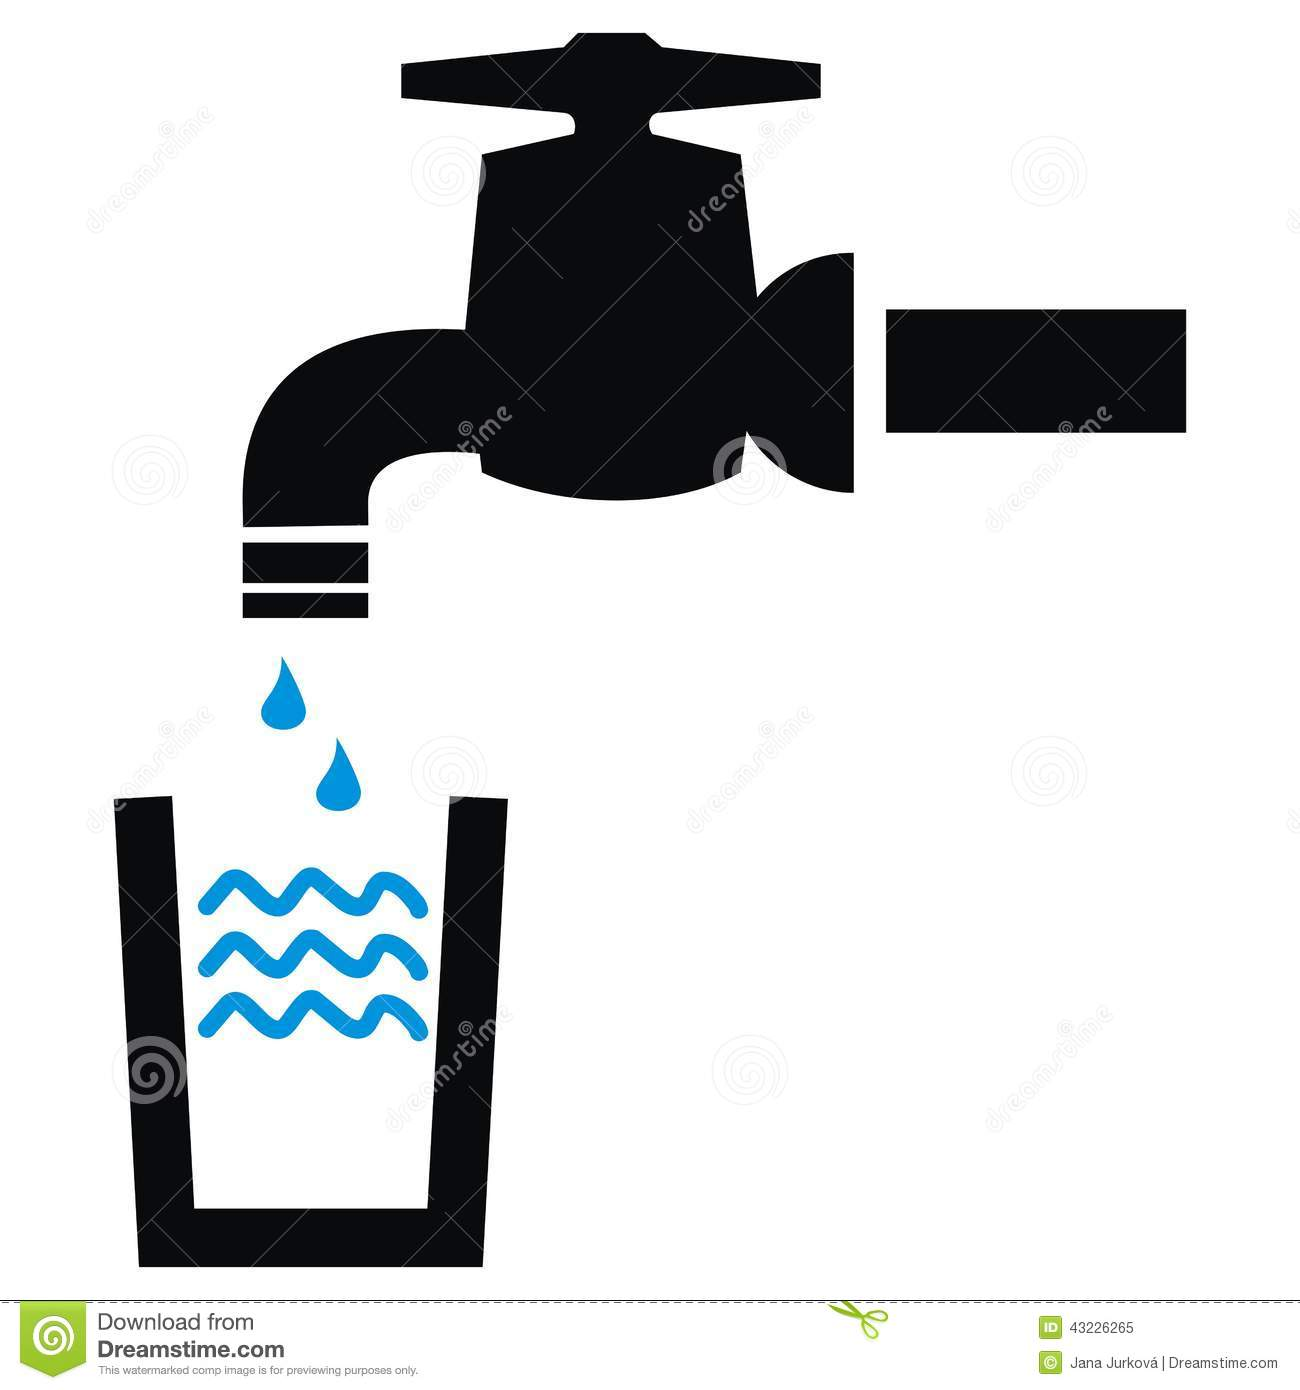 HD wallpapers bathroom spigot